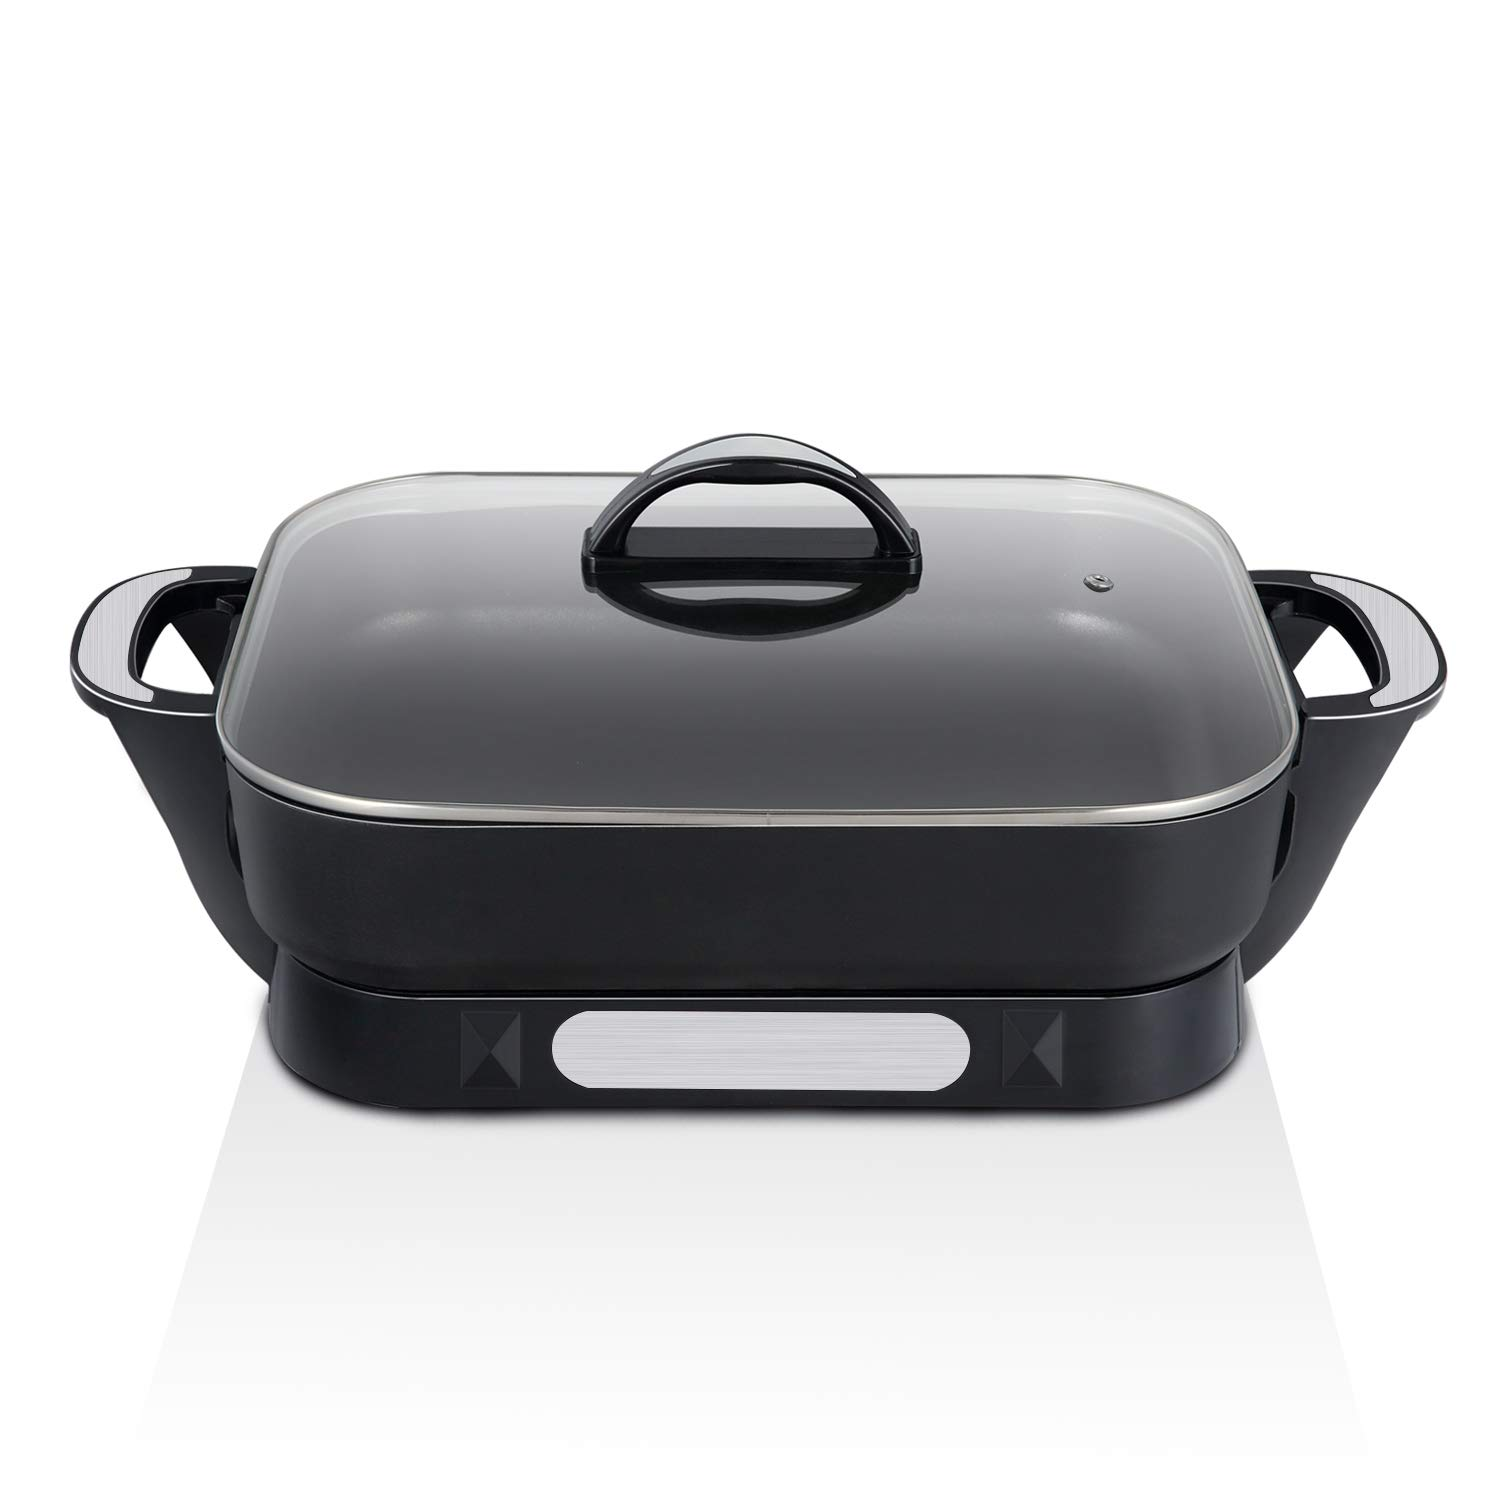 efluky 15 inch Electric Skillet with Non-stick Coated Aluminium Pan 17 x 12.7 x 5.6 inch, Black, GD-15